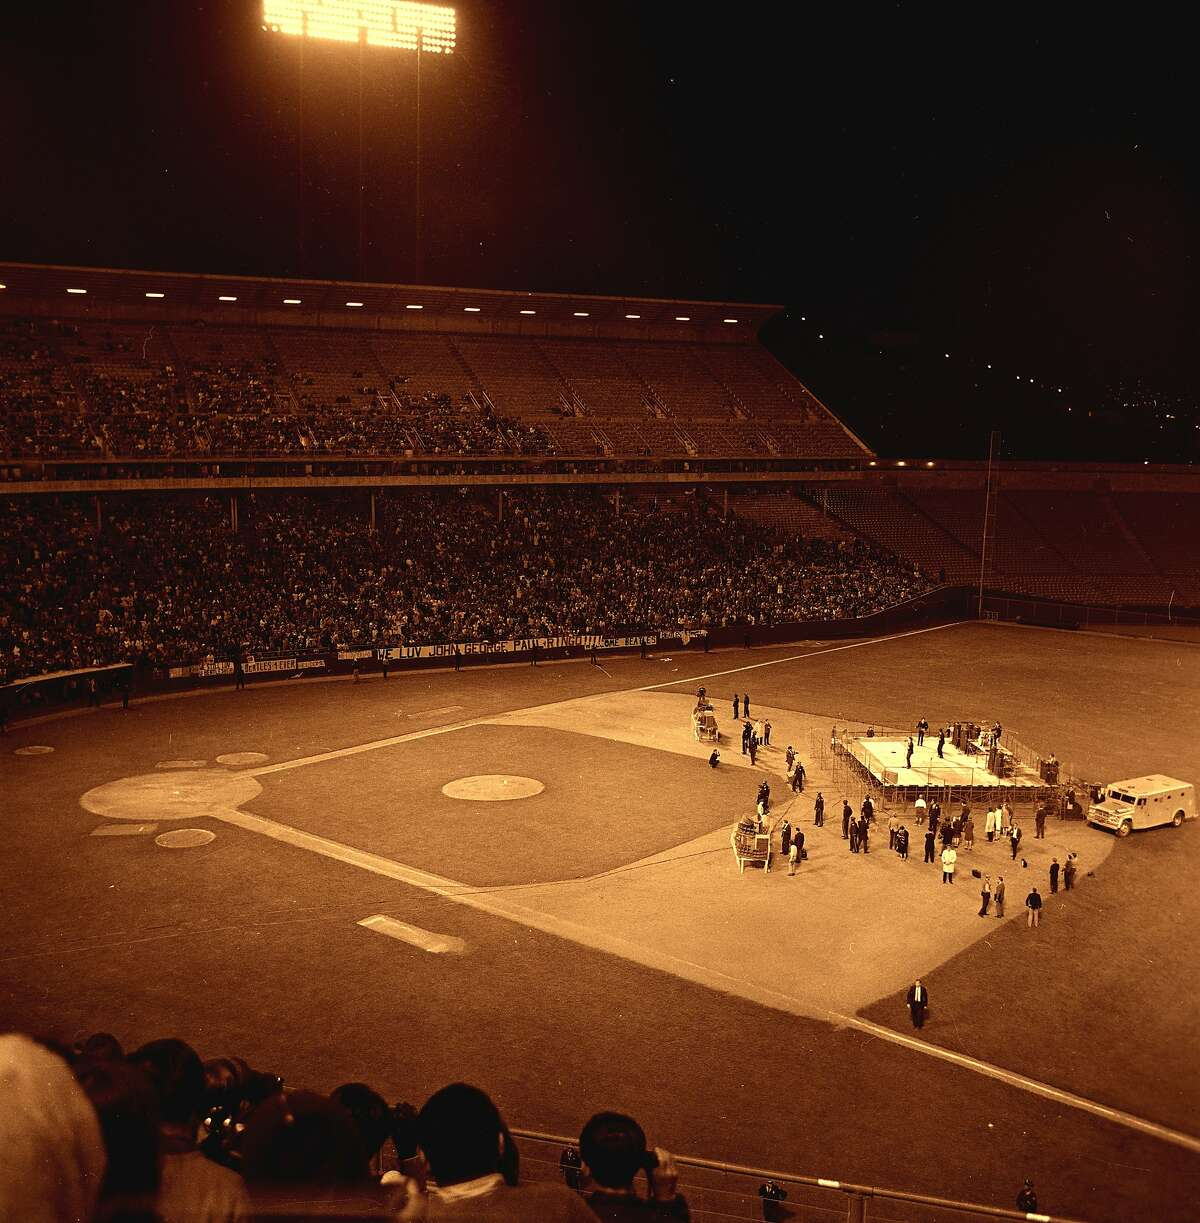 The Beatles perform at Candlestick Park for the last time on Oct. 18, 1966.